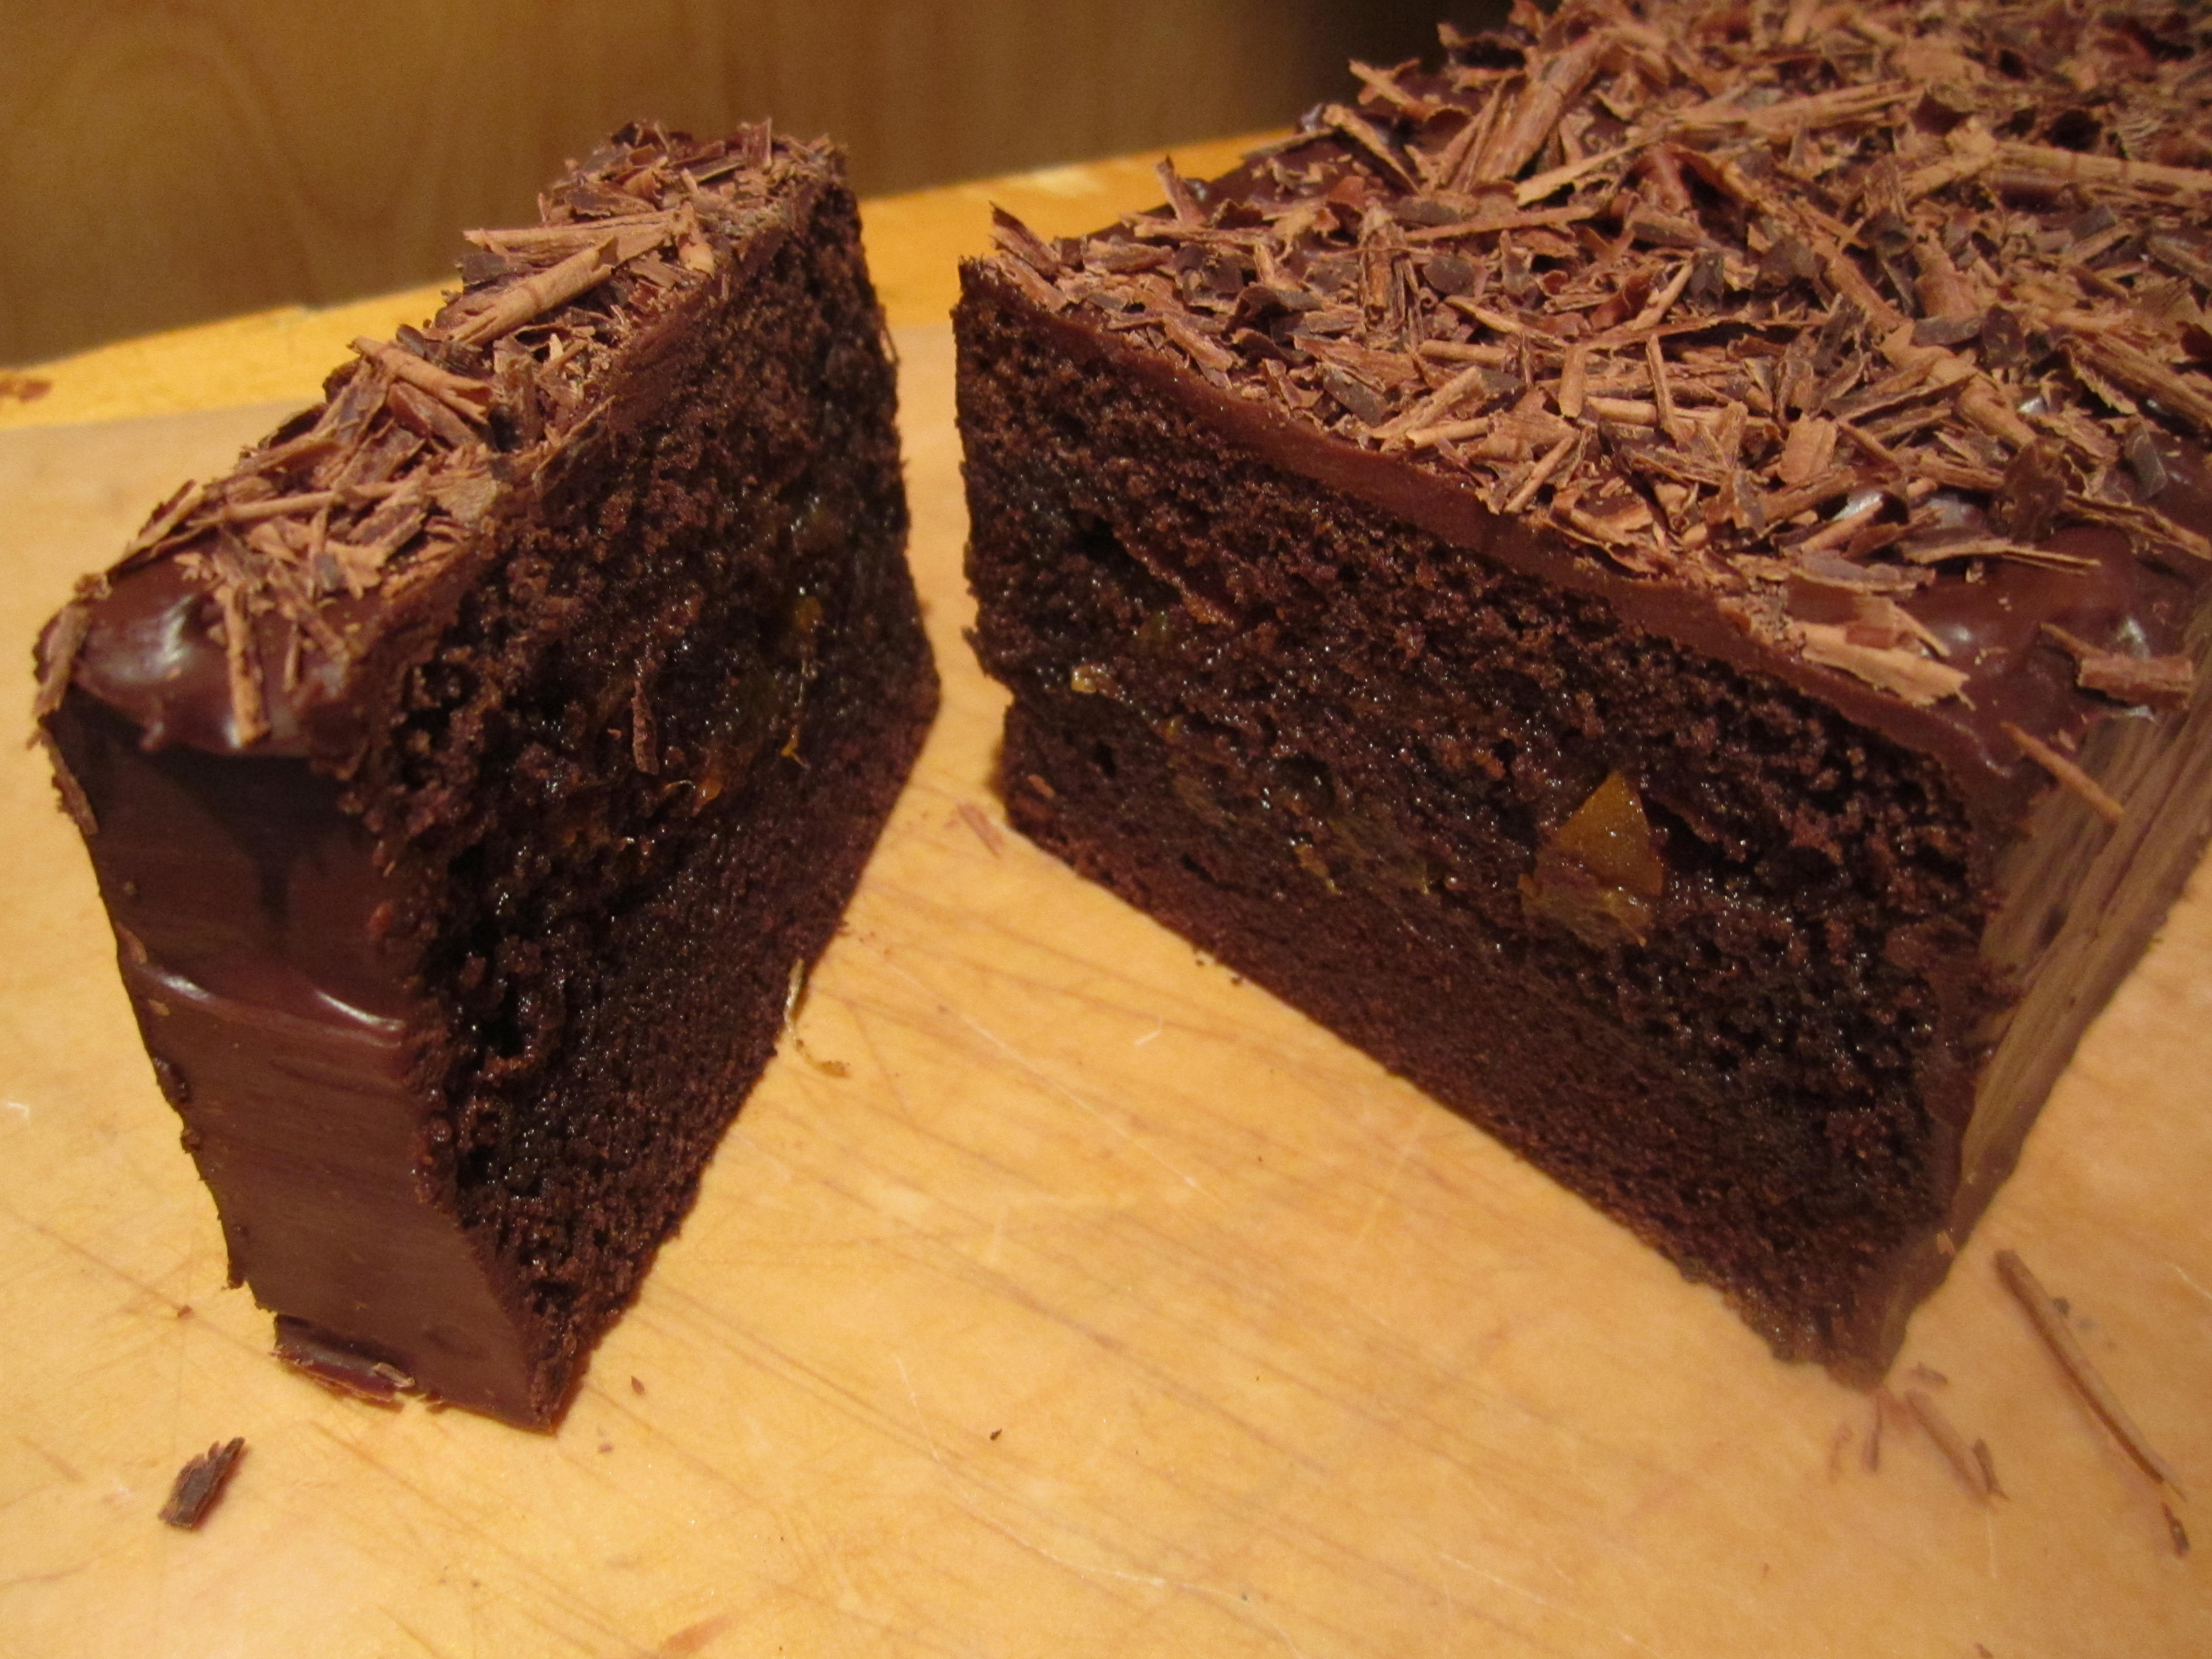 chocolate cake sacher torte from sachers in sacher torte at the sacher ...